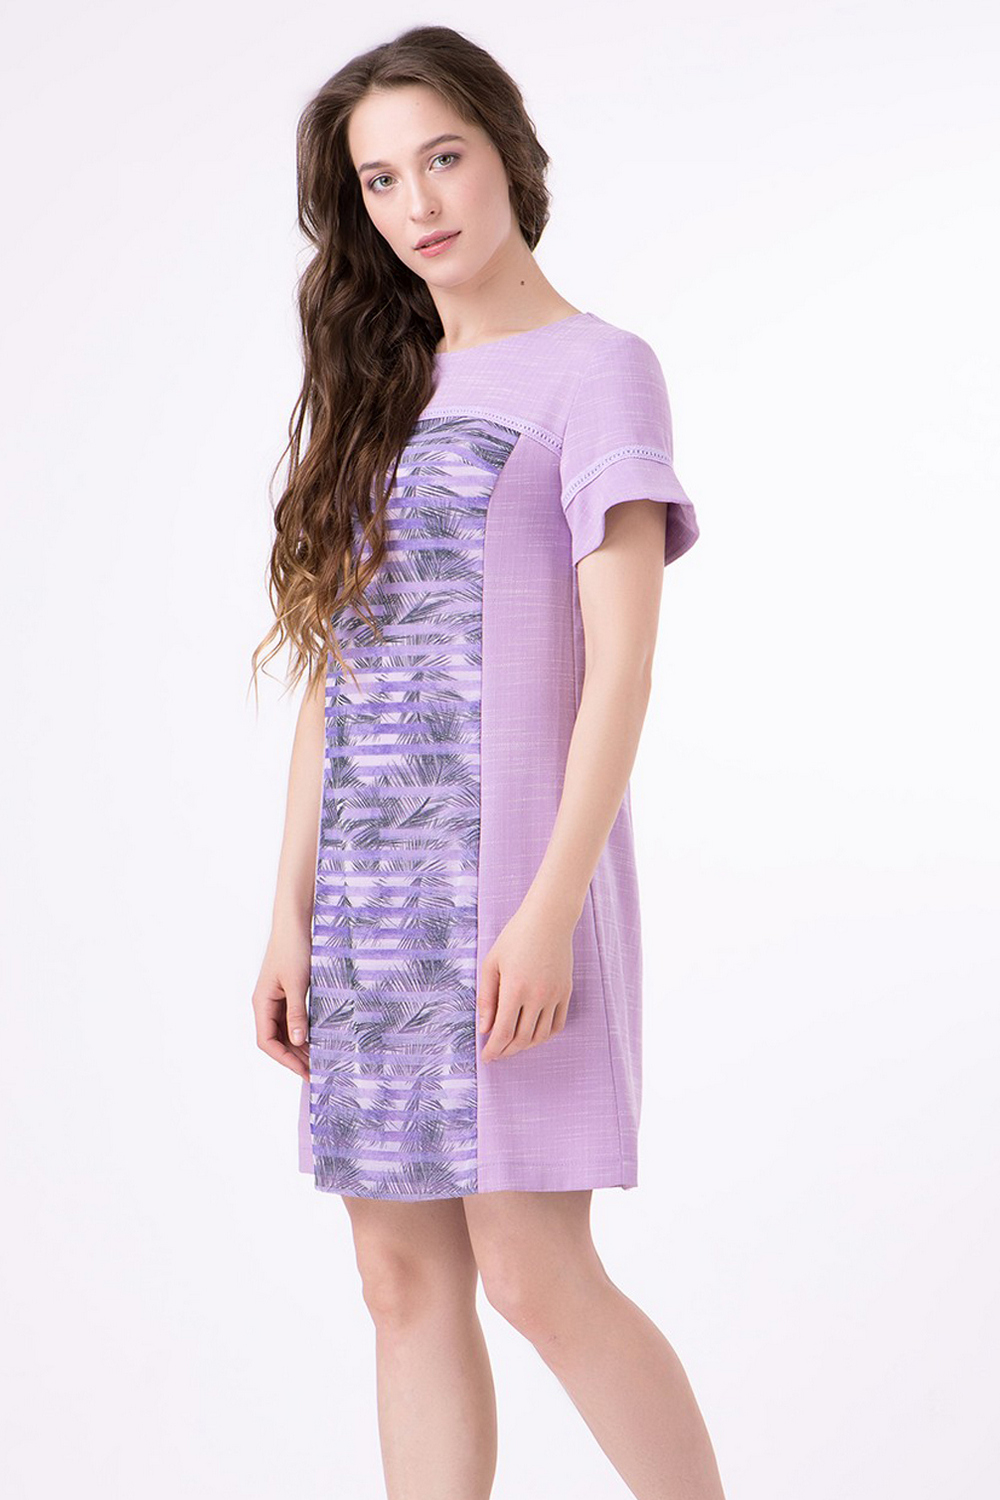 Buy Summer elegant lilac linen dress, Short sleeve loose comfortable casual dress